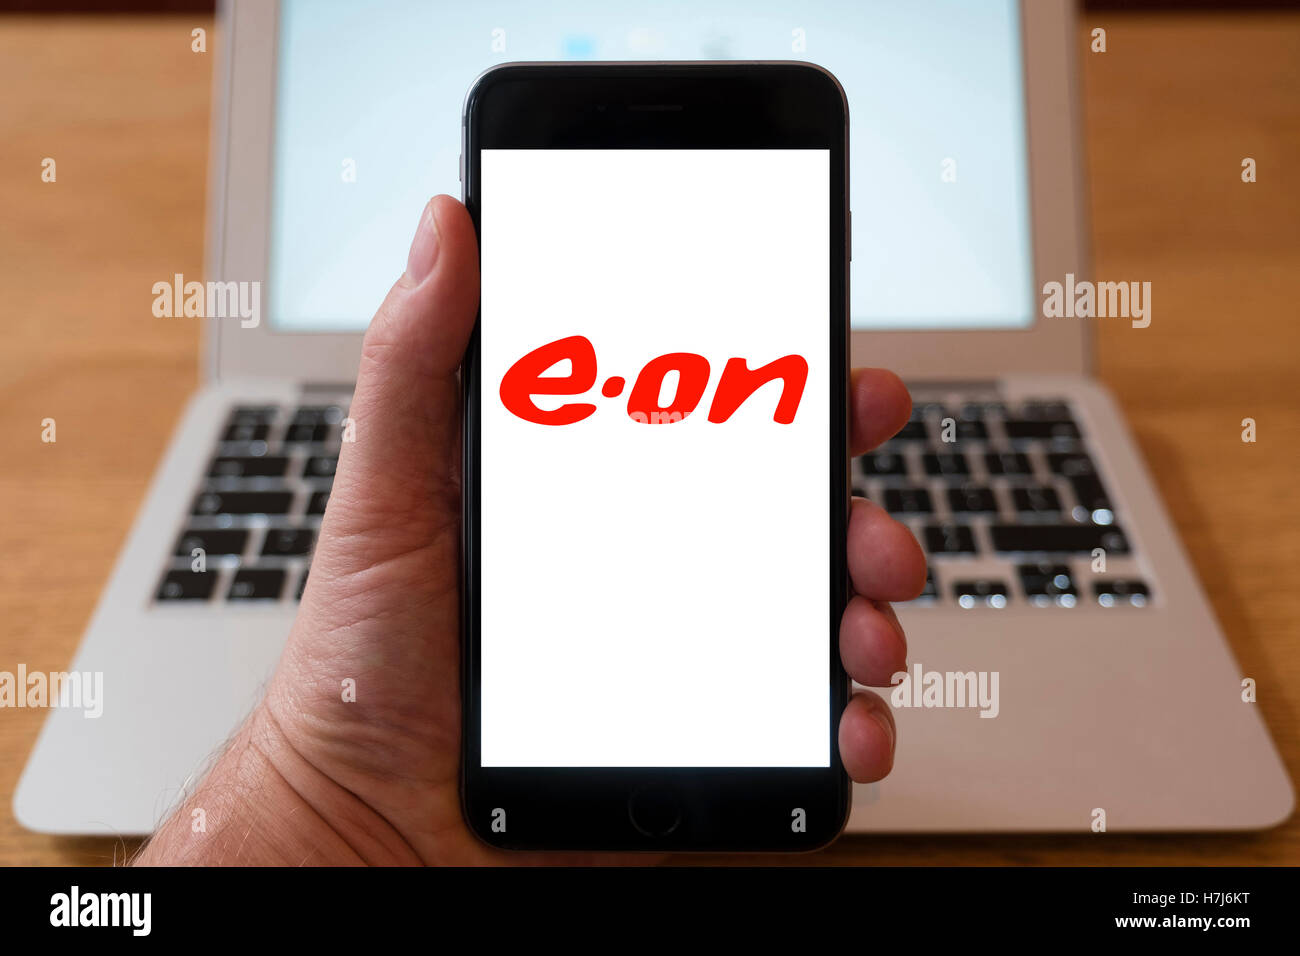 Using iPhone smart phone to display logo of e-on power company - Stock Image